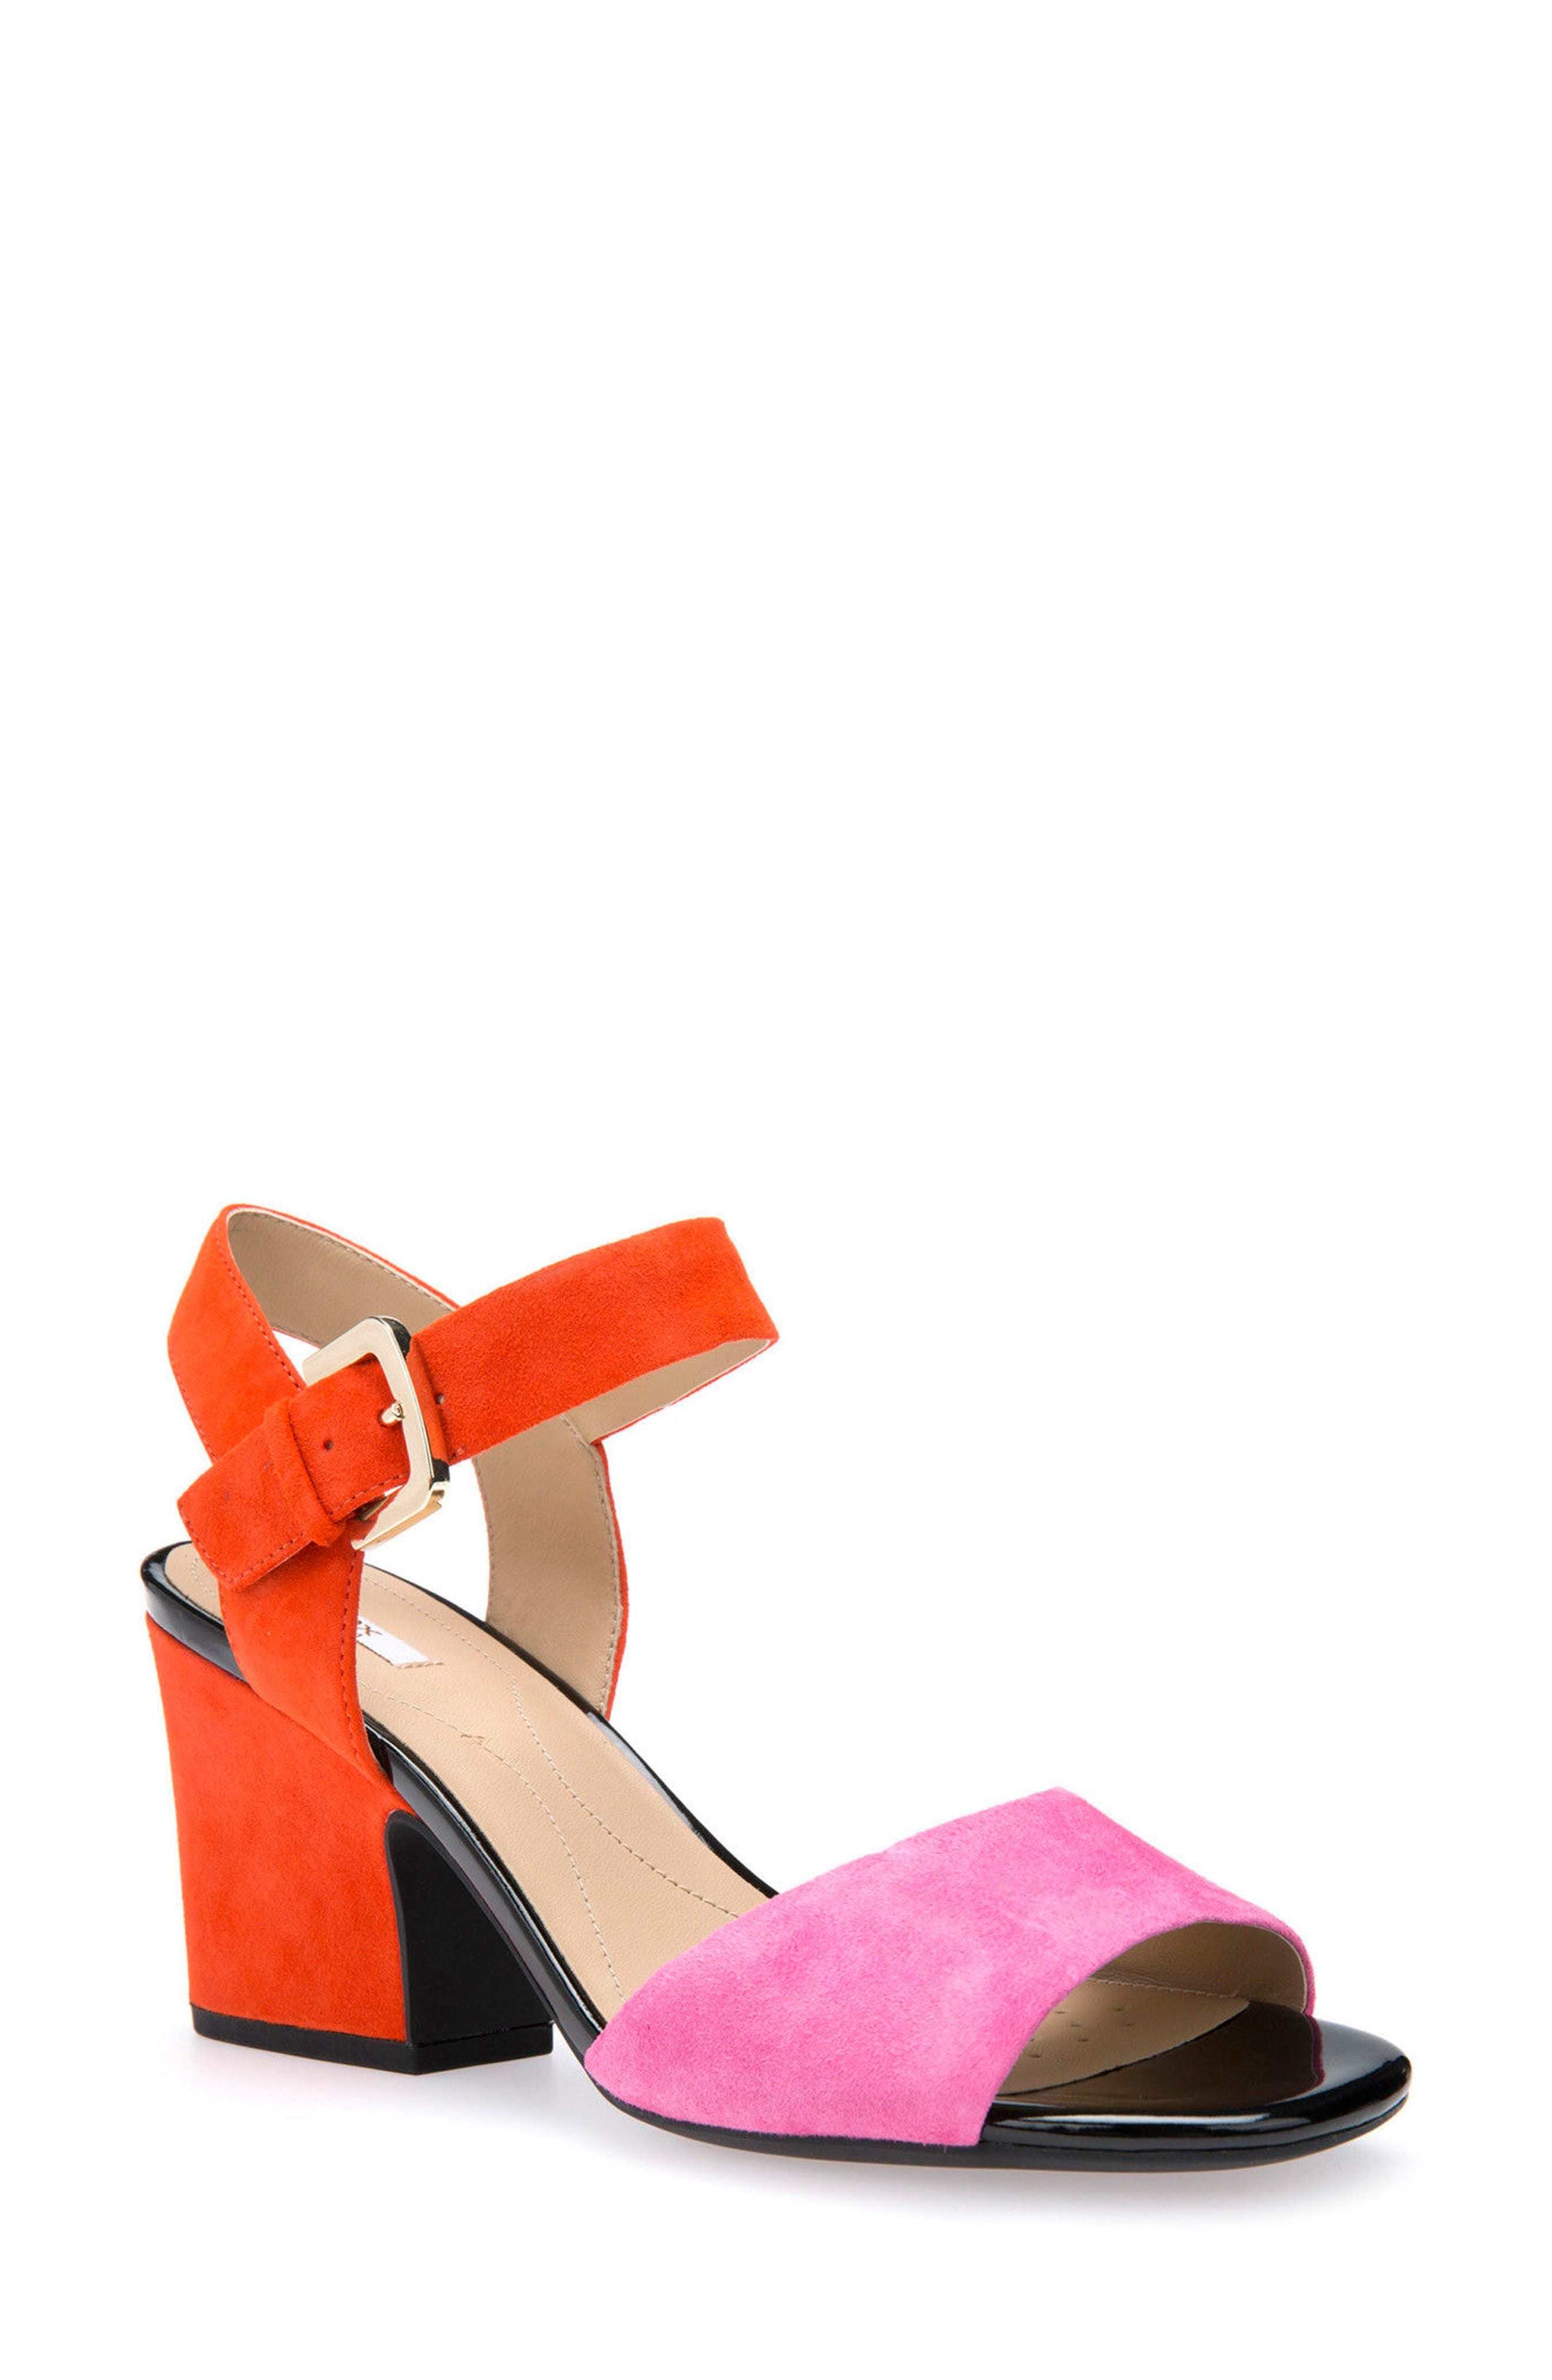 Main Image - Geox Marilyse Ankle Strap Sandal (Women)